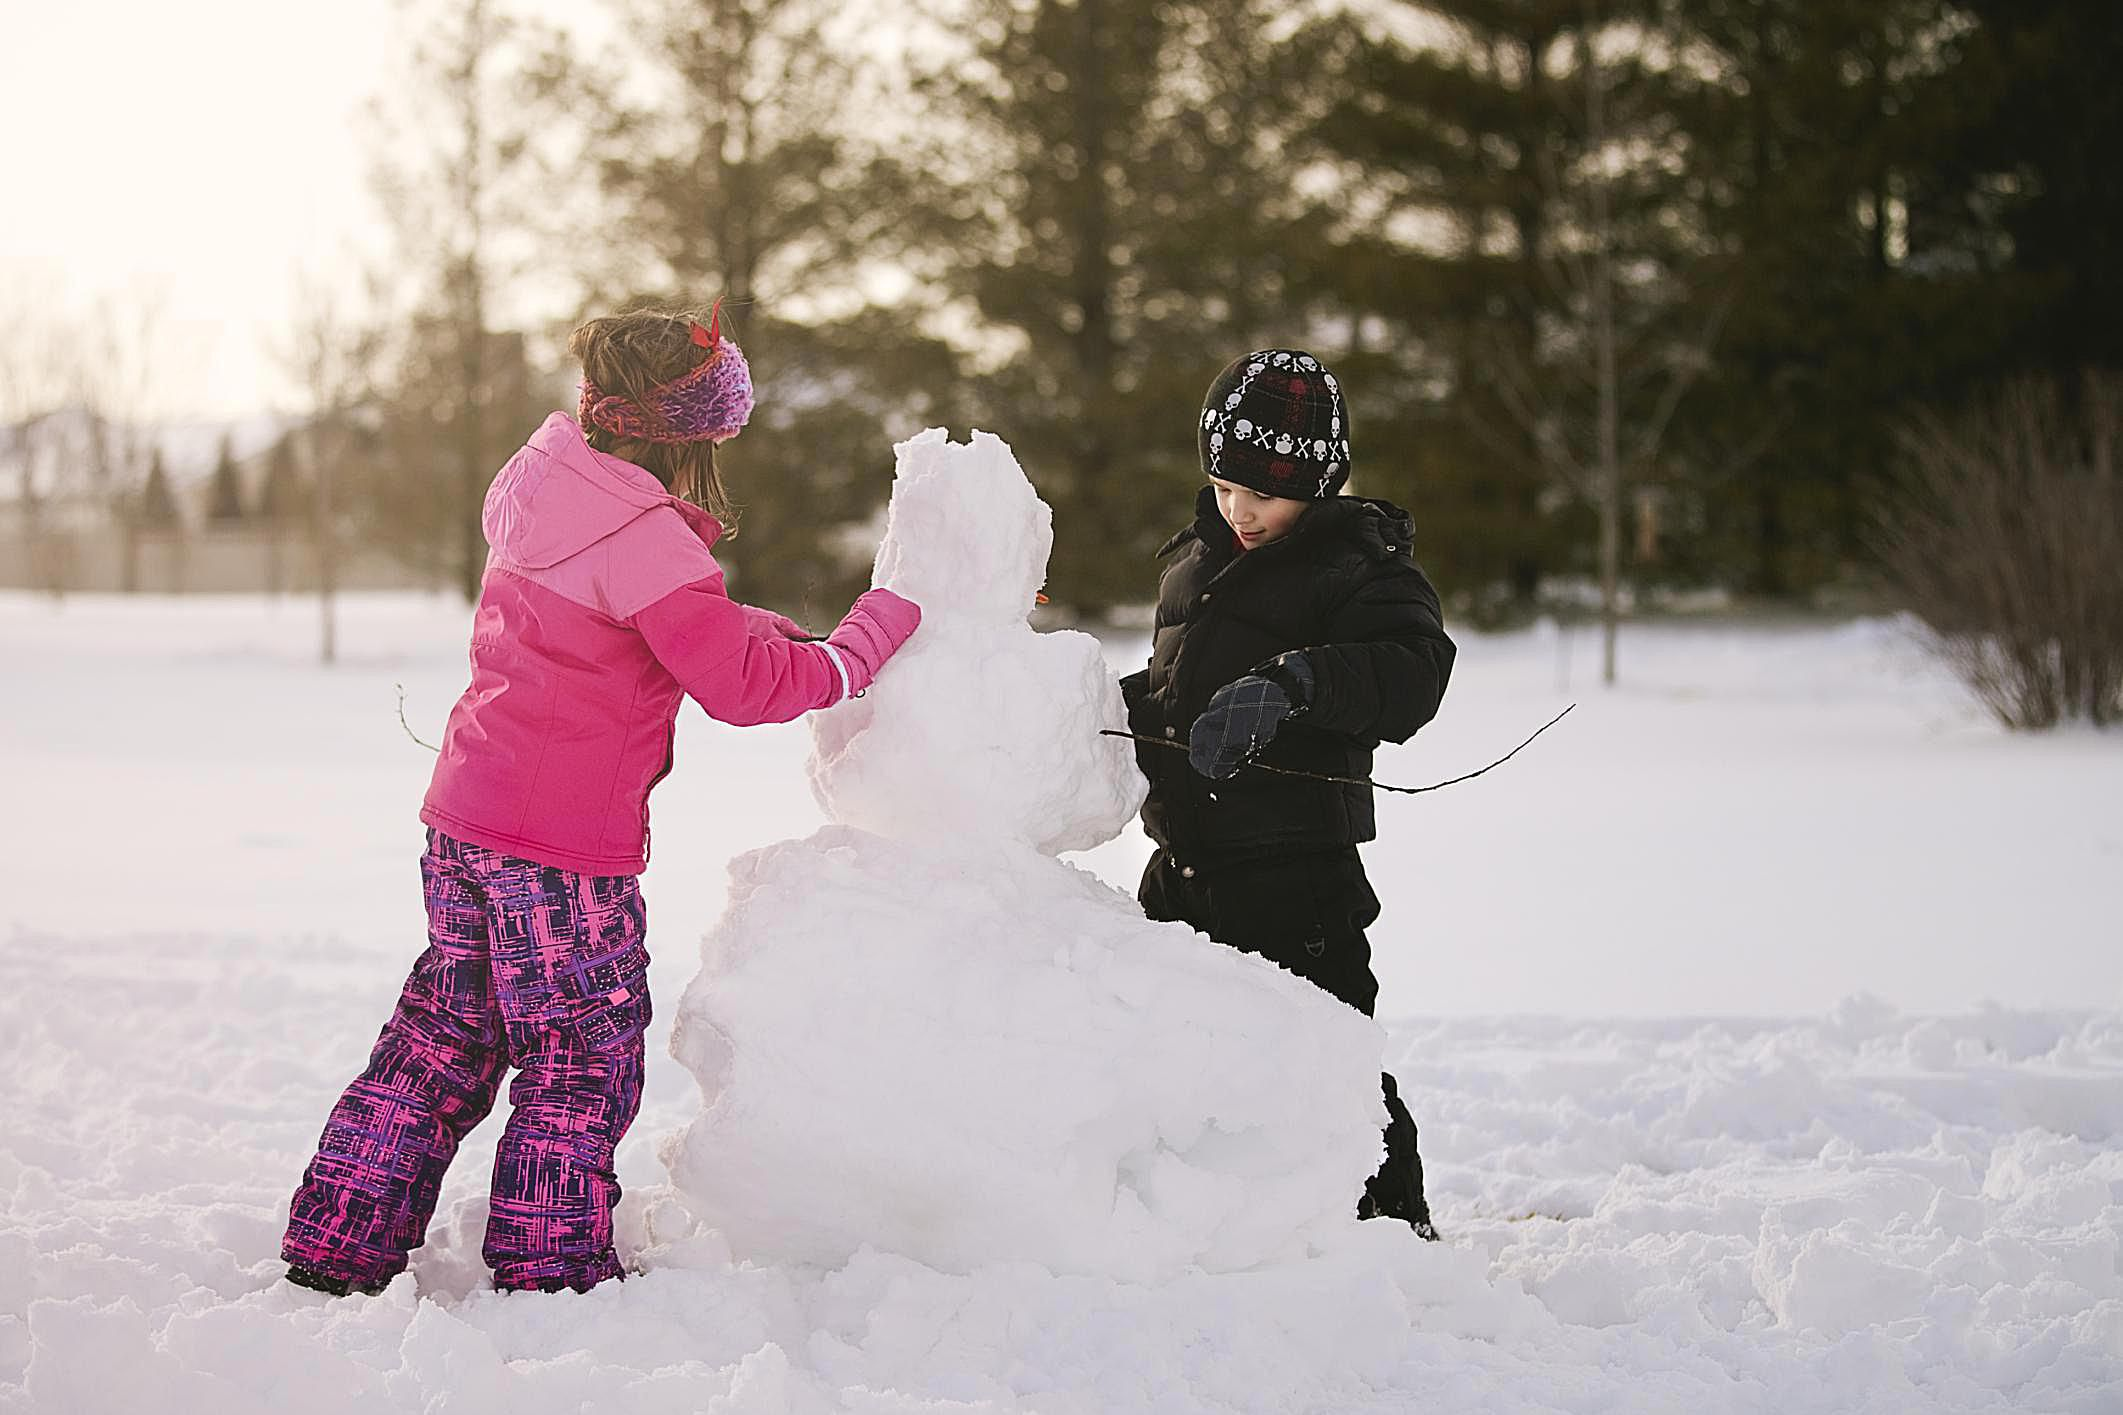 party games for wintertime fun